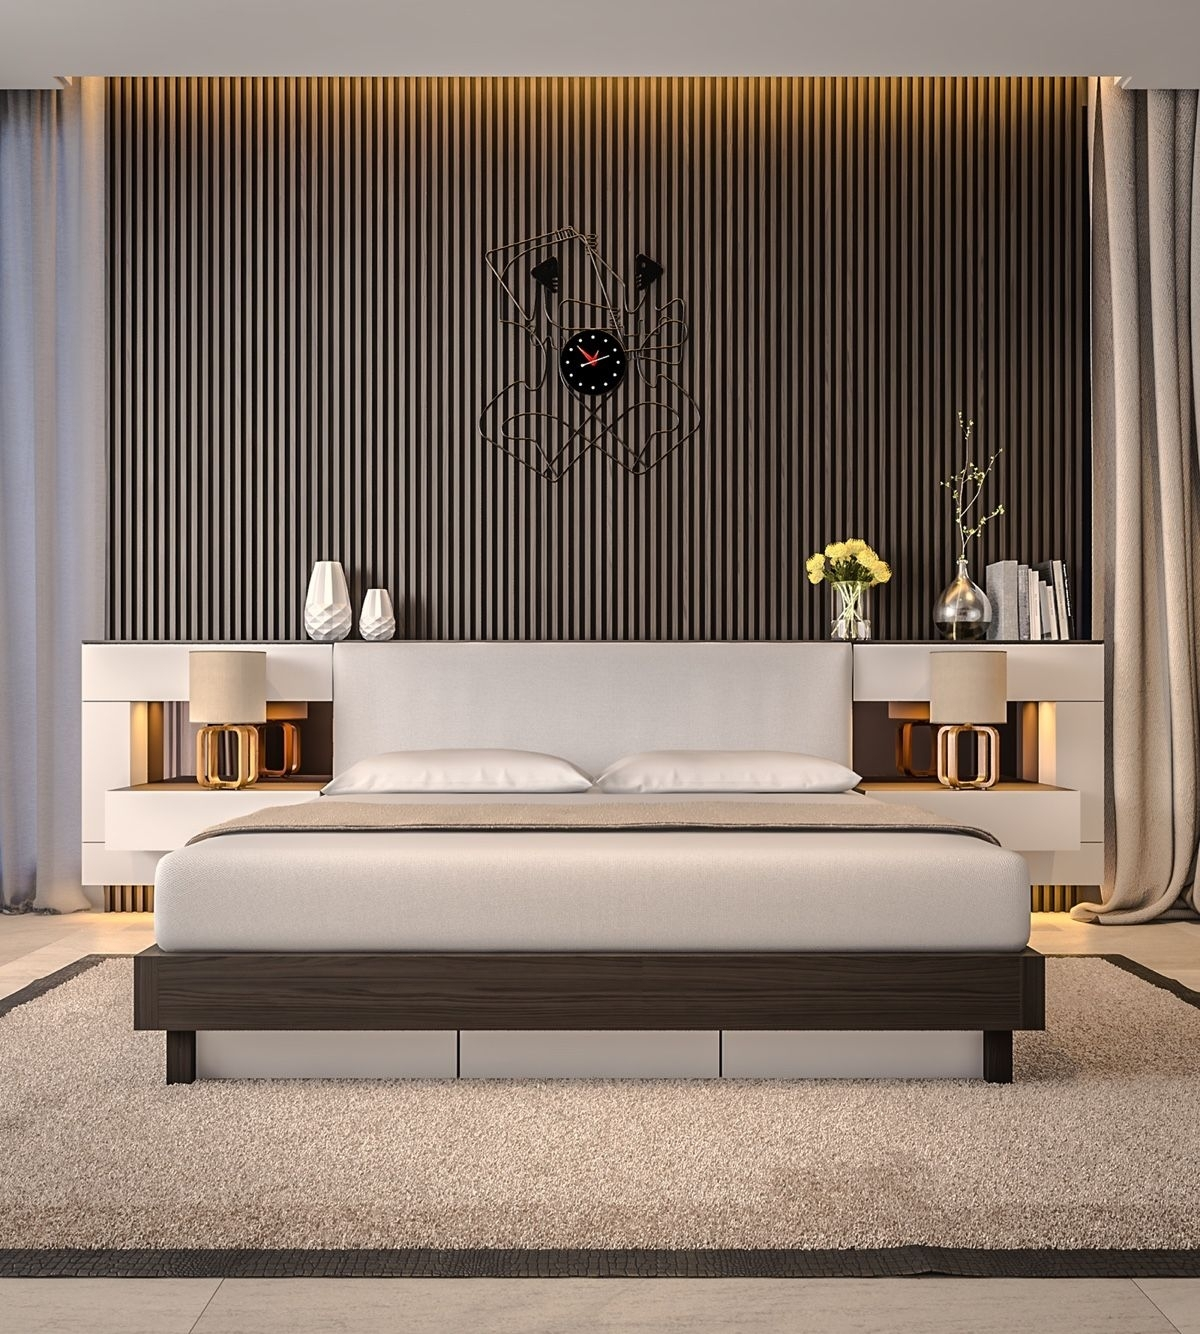 Bedroom Design: Accent Wall Ideas For Living Room Wallpaper Accent In Best And Newest Wallpaper Wall Accents (View 6 of 15)